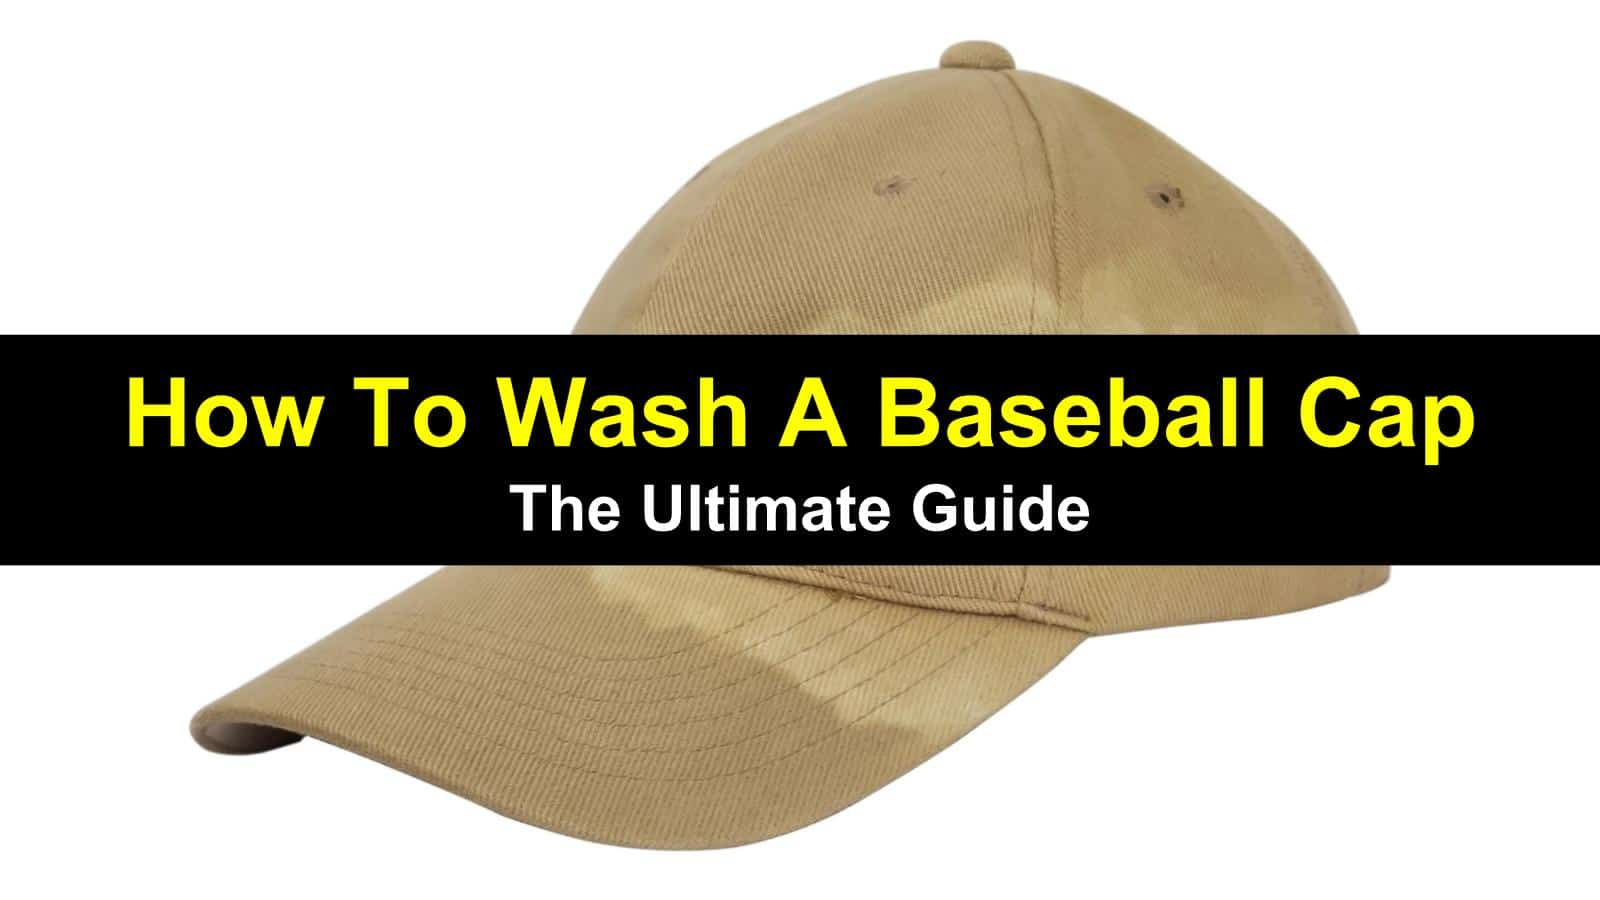 Your baseball cap is part of your outfit. Check out the ultimate guide on how to wash a baseball cap.